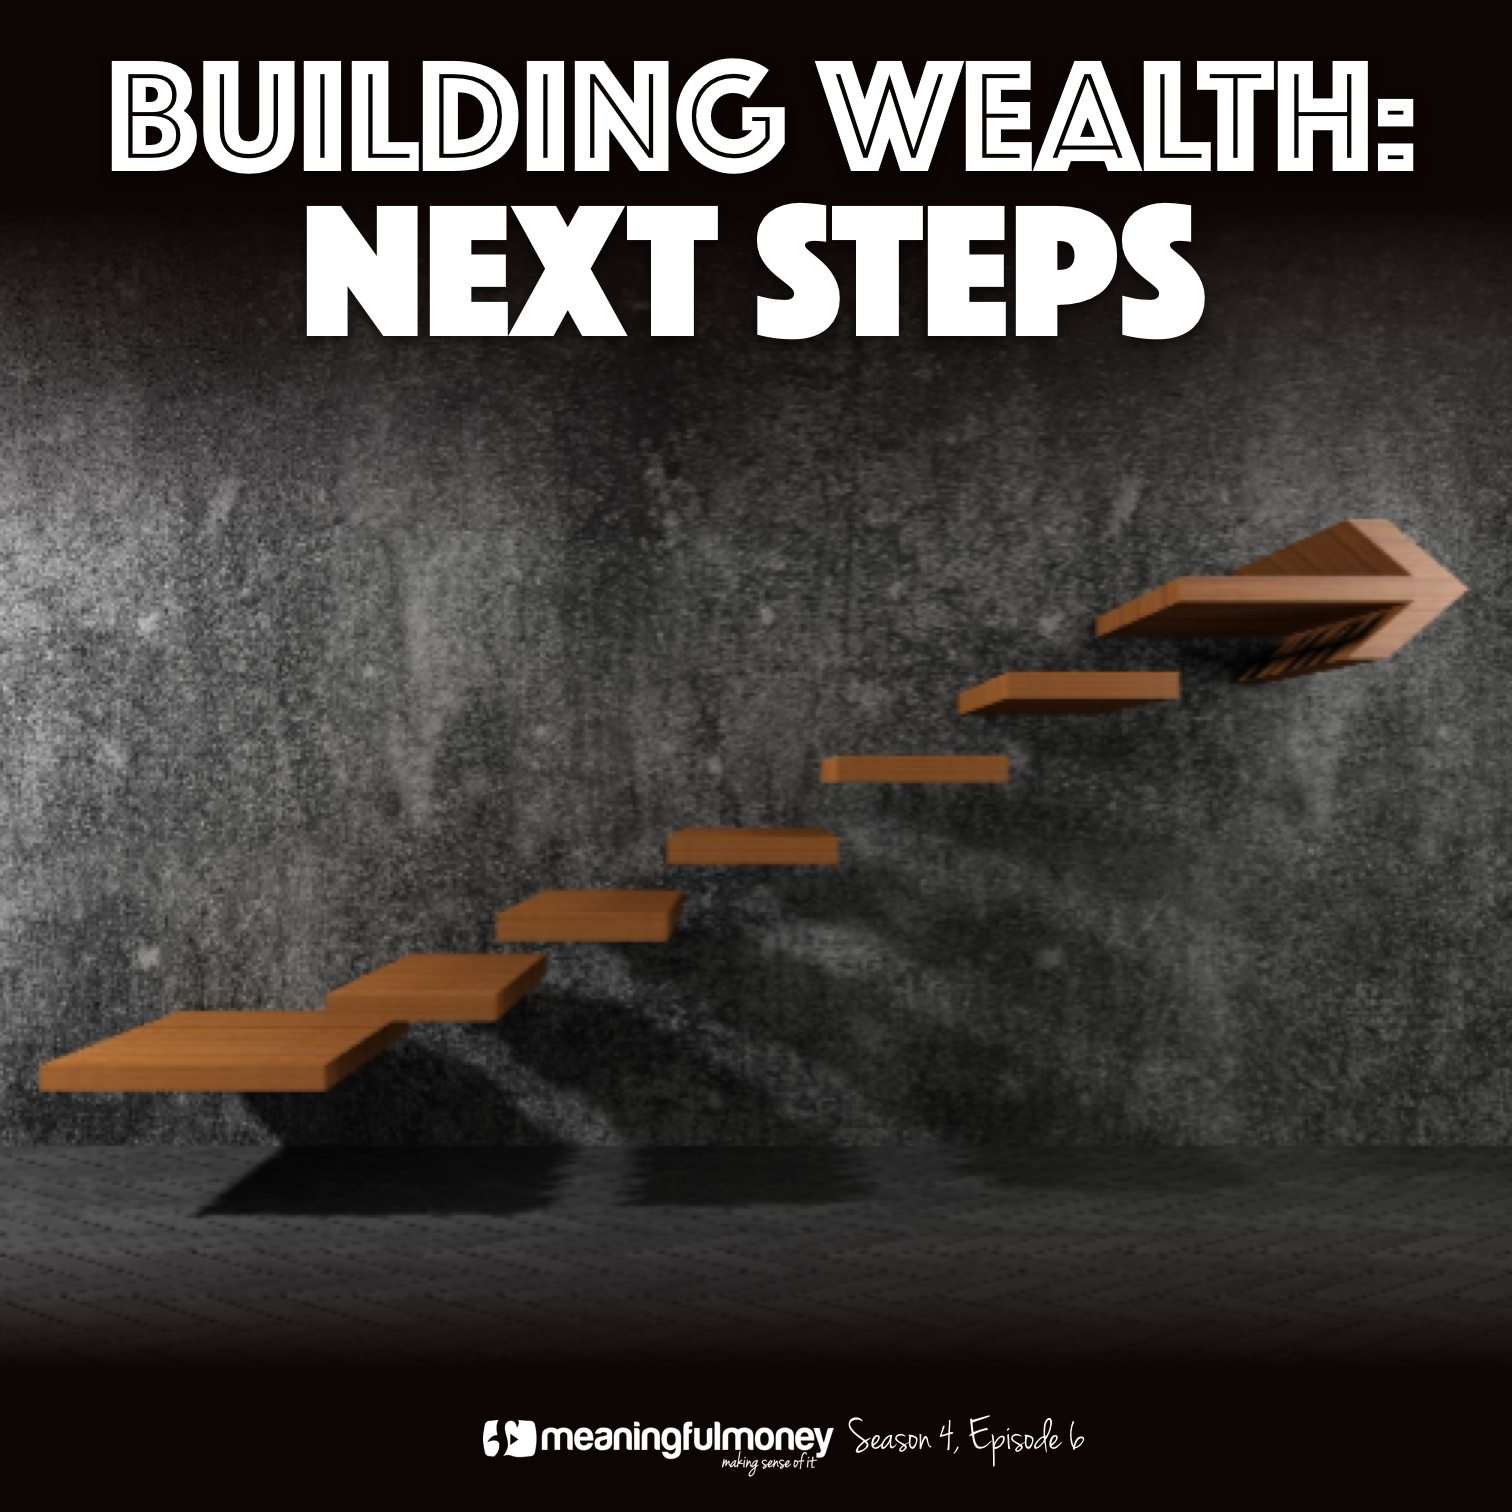 Building Wealth Next Steps|Building Wealth Next Steps